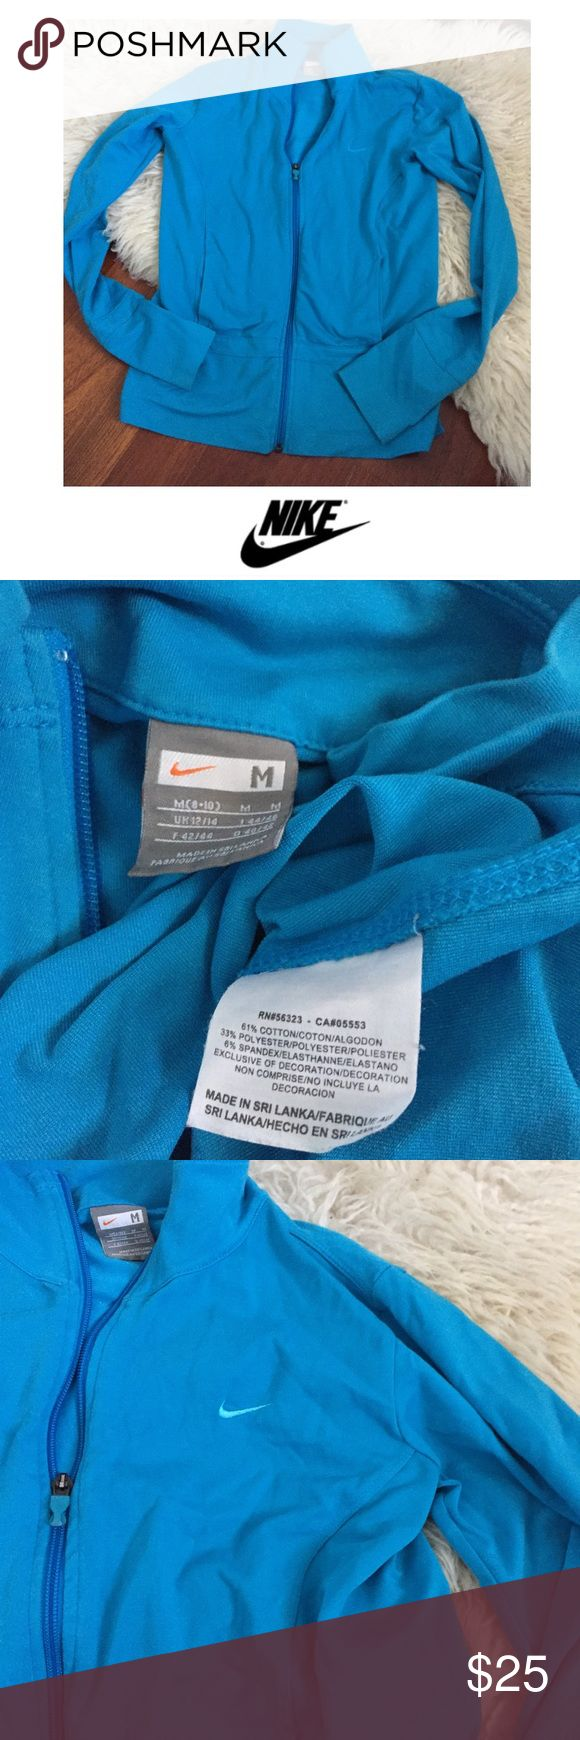 Nike Women's Blue Zip Up Athletic Jacket Nike Women's Blue Zip Up Athletic Jacket. 17 inch bust. 24 inches long. Gently worn. Great condition. Front pockets. Feel free to make an offer or bundle and save. Nike Jackets & Coats